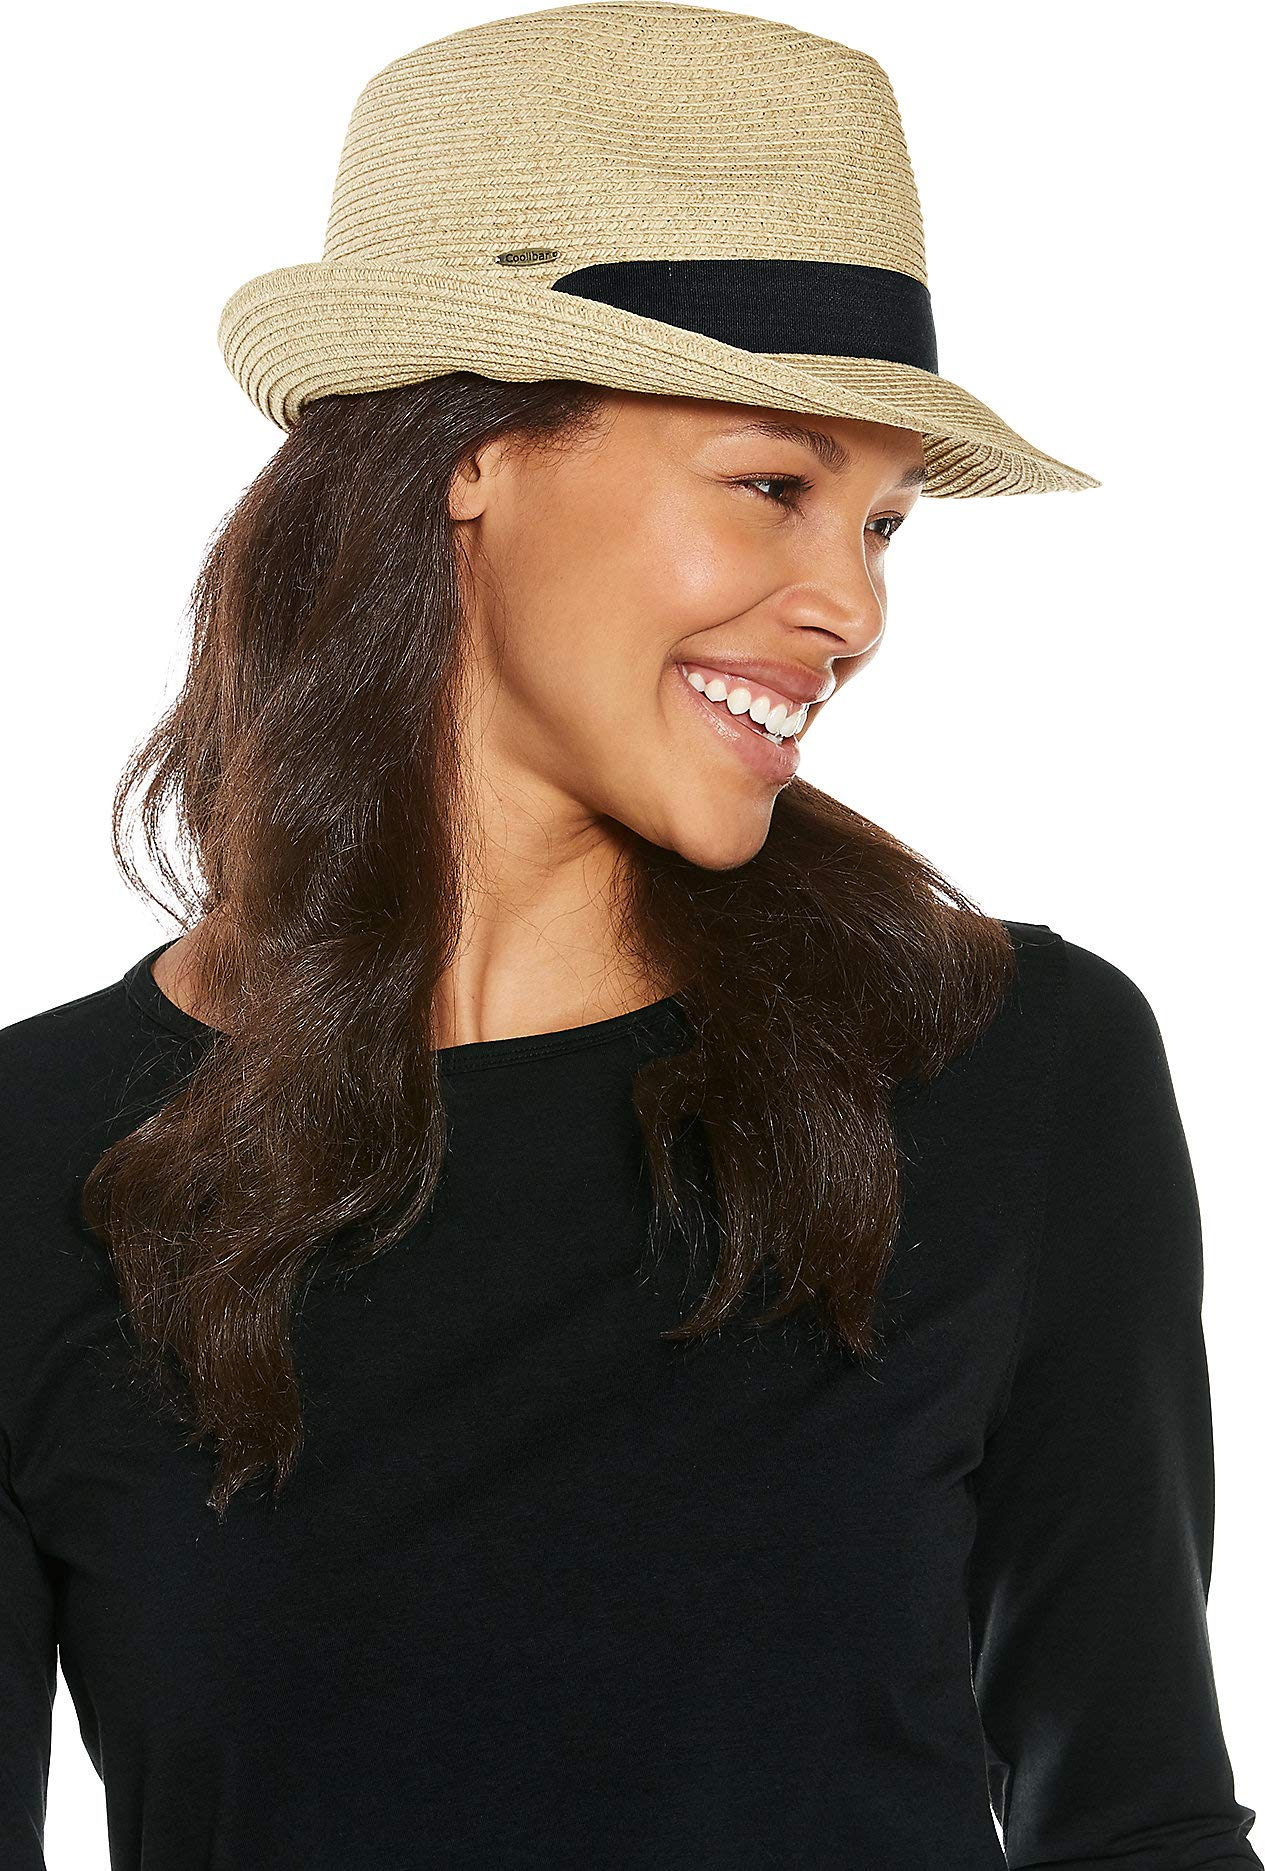 Coolibar UPF 50+ Women's Megan Fedora - Sun Protective (One Size- Natural)